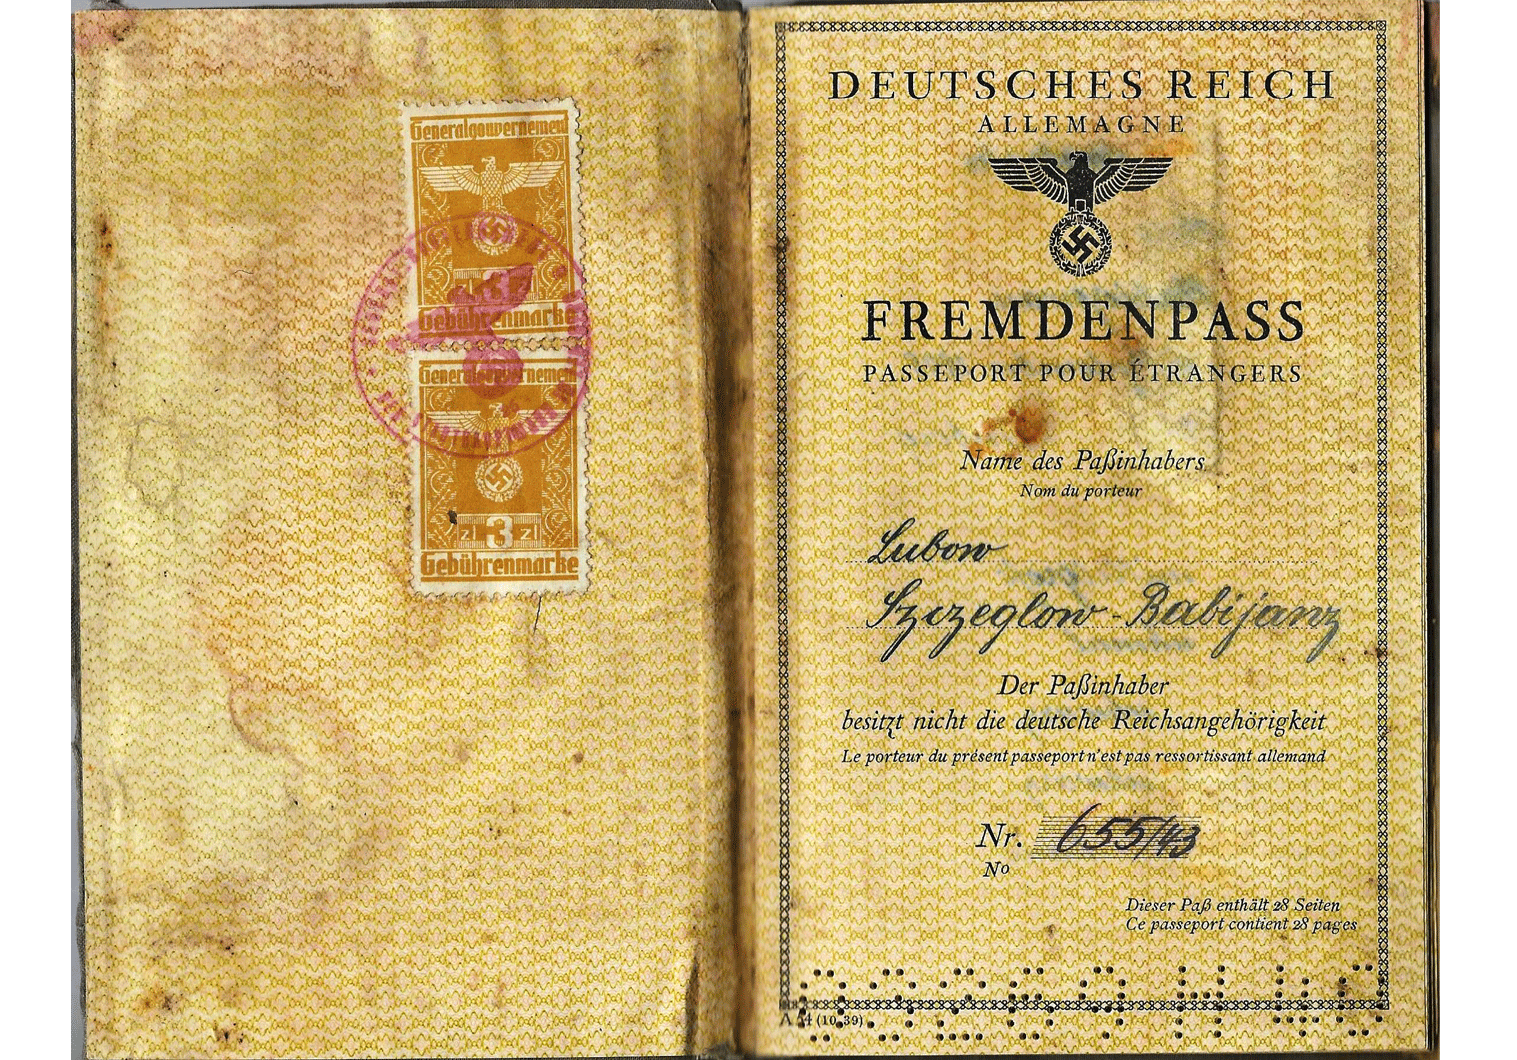 German issued foreigner-passports